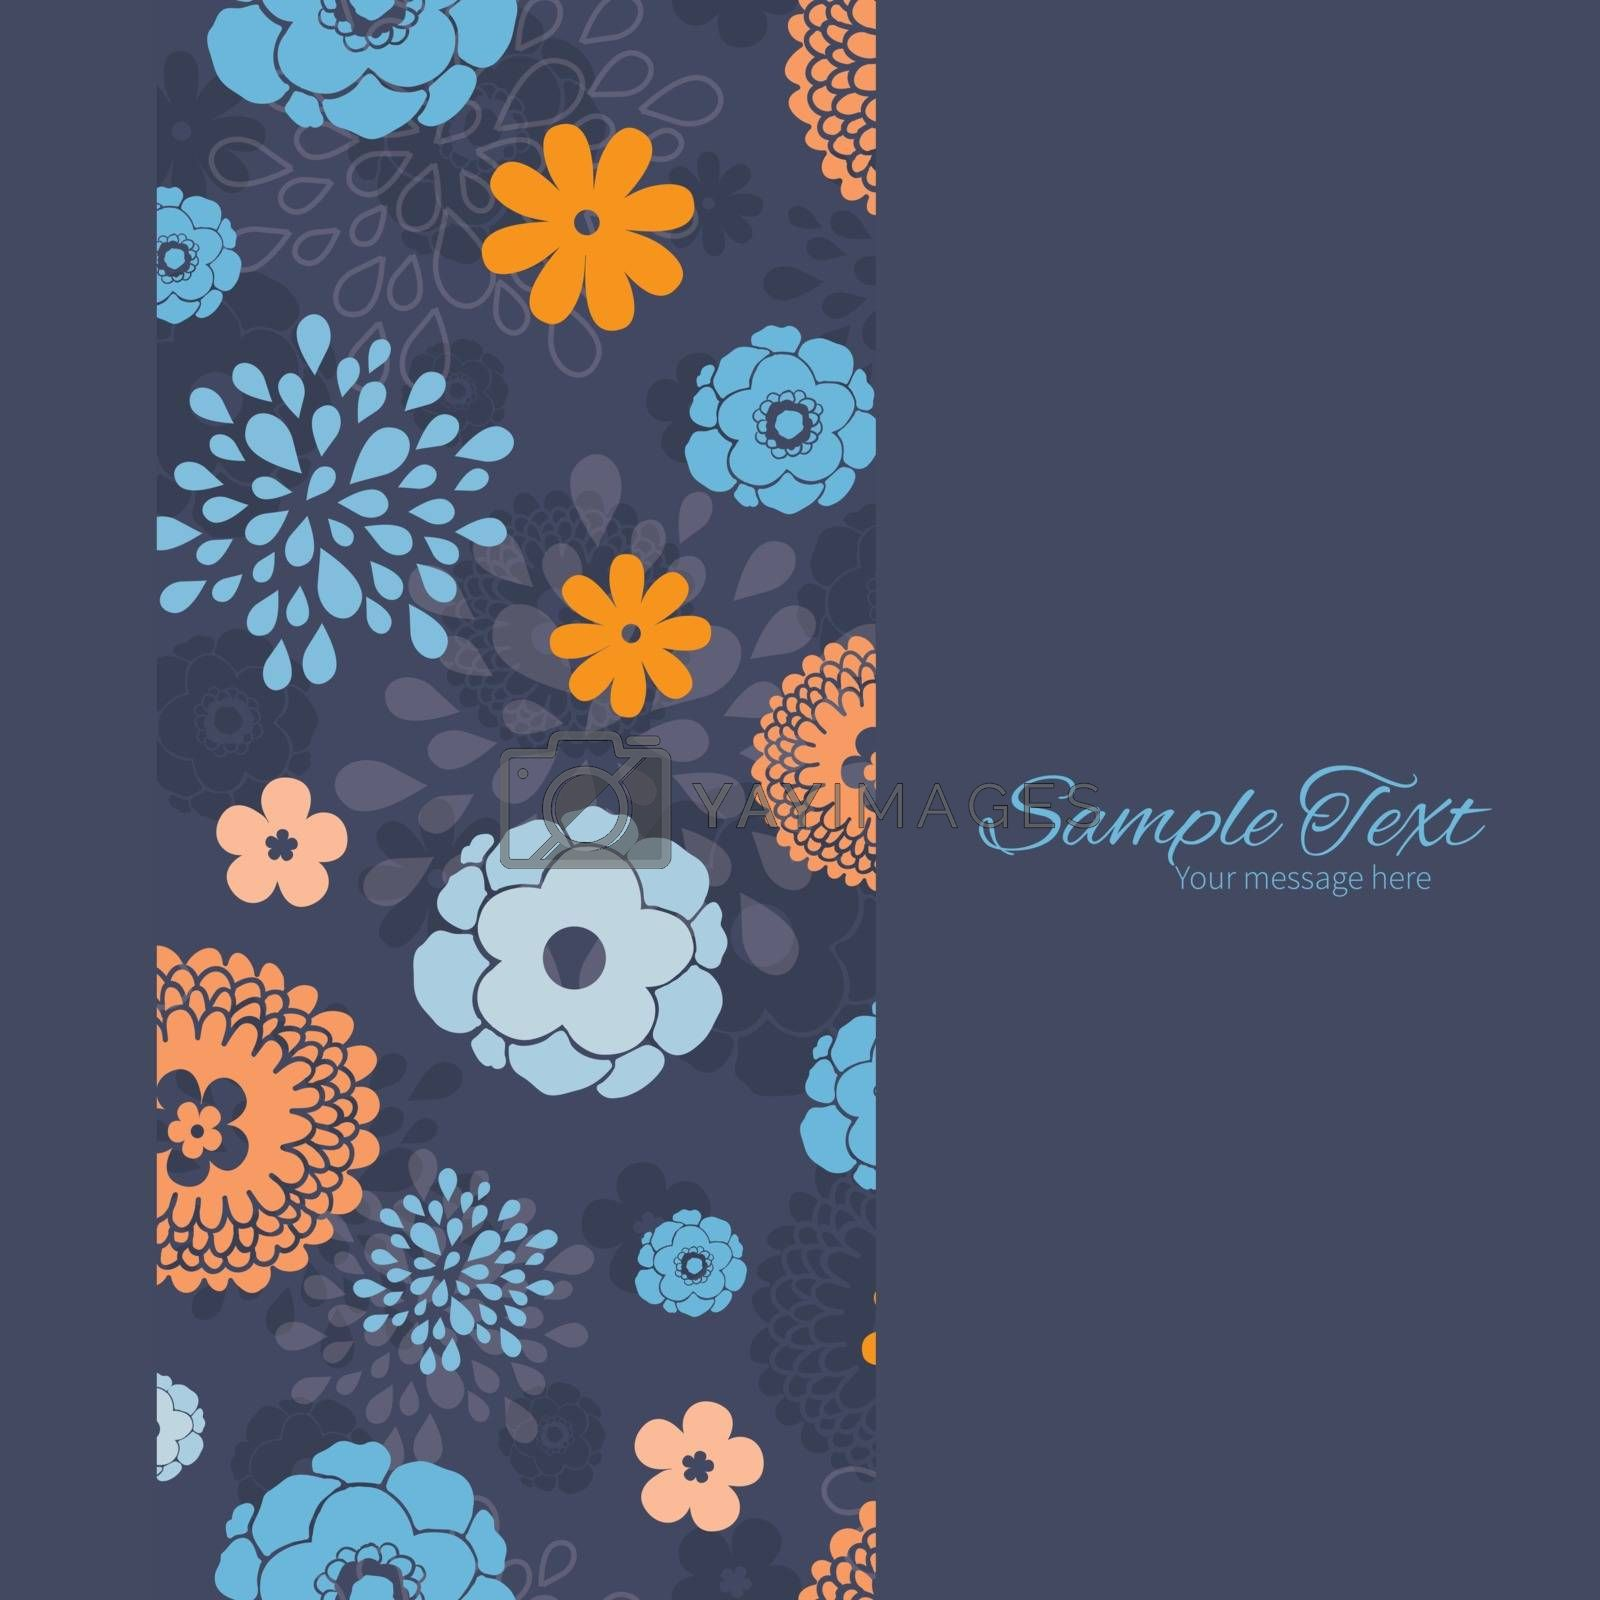 Vector golden and blue night flowers vertical frame seamless pattern background graphic design